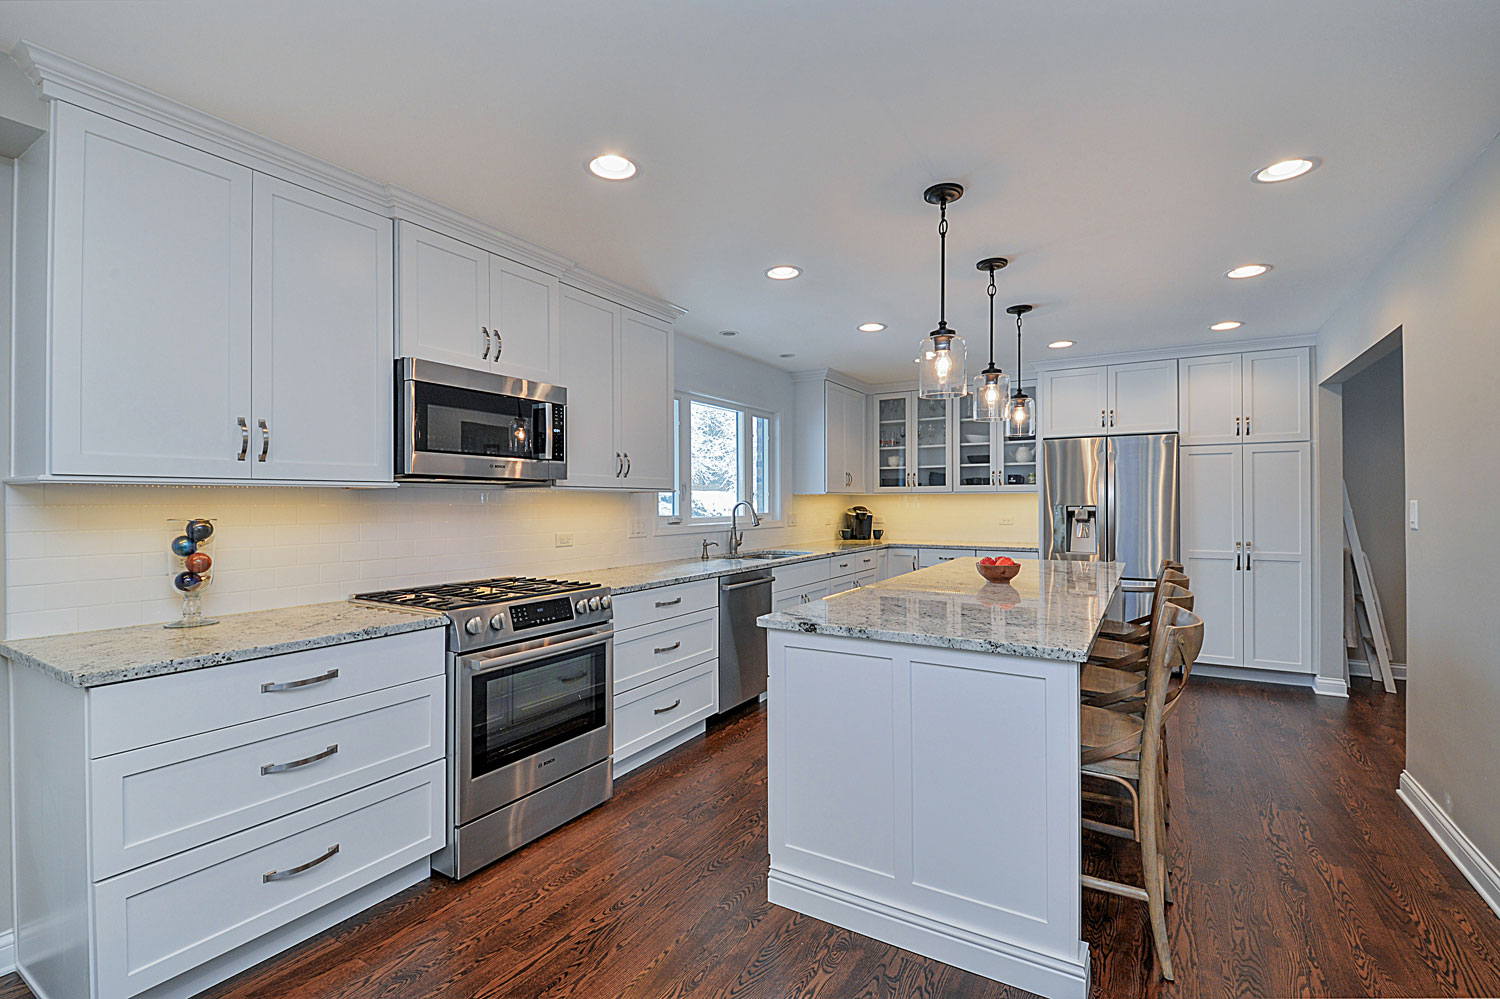 Kitchen Remodel Naperville - Sebring Design Build